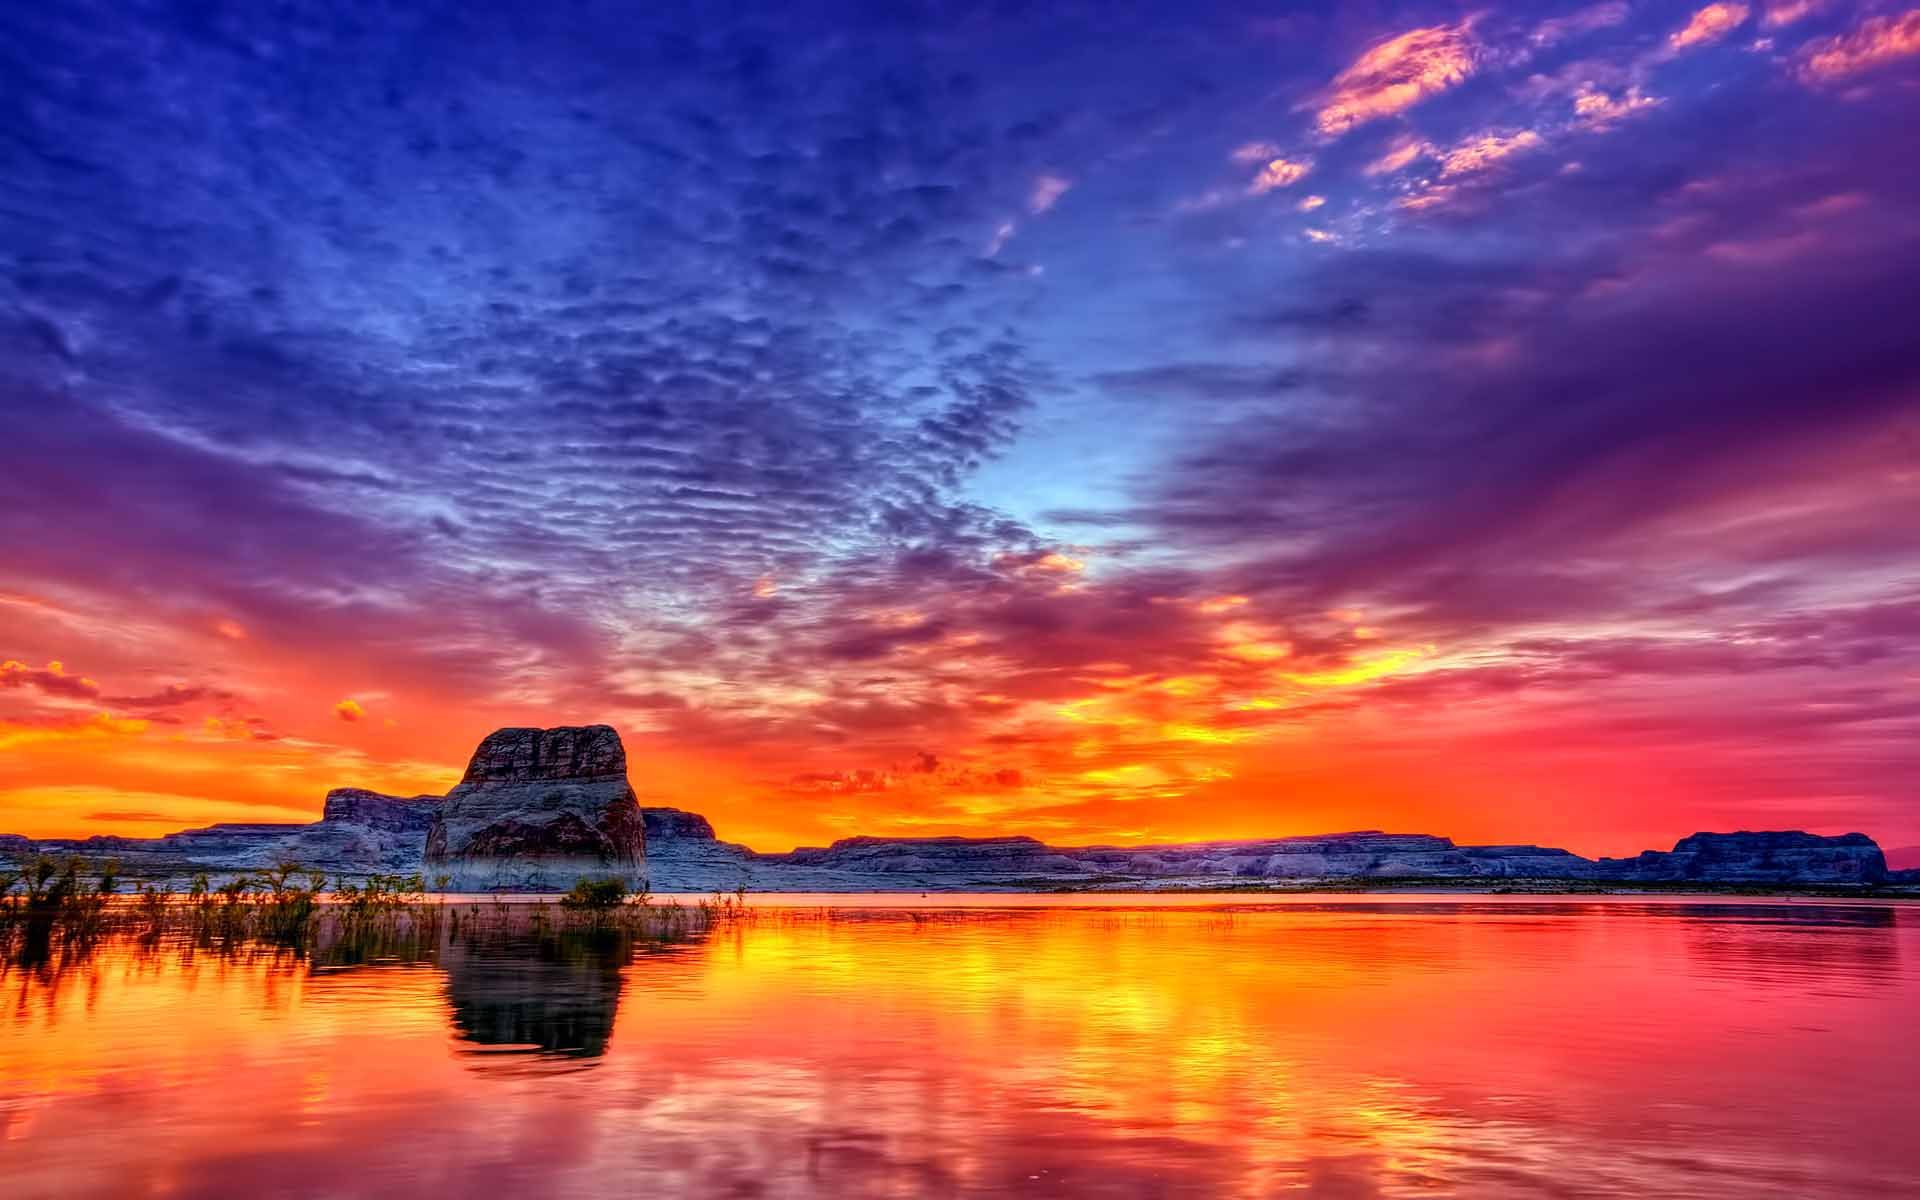 lake sunset wallpaper get free top quality lake sunset wallpaper for your desktop pc background